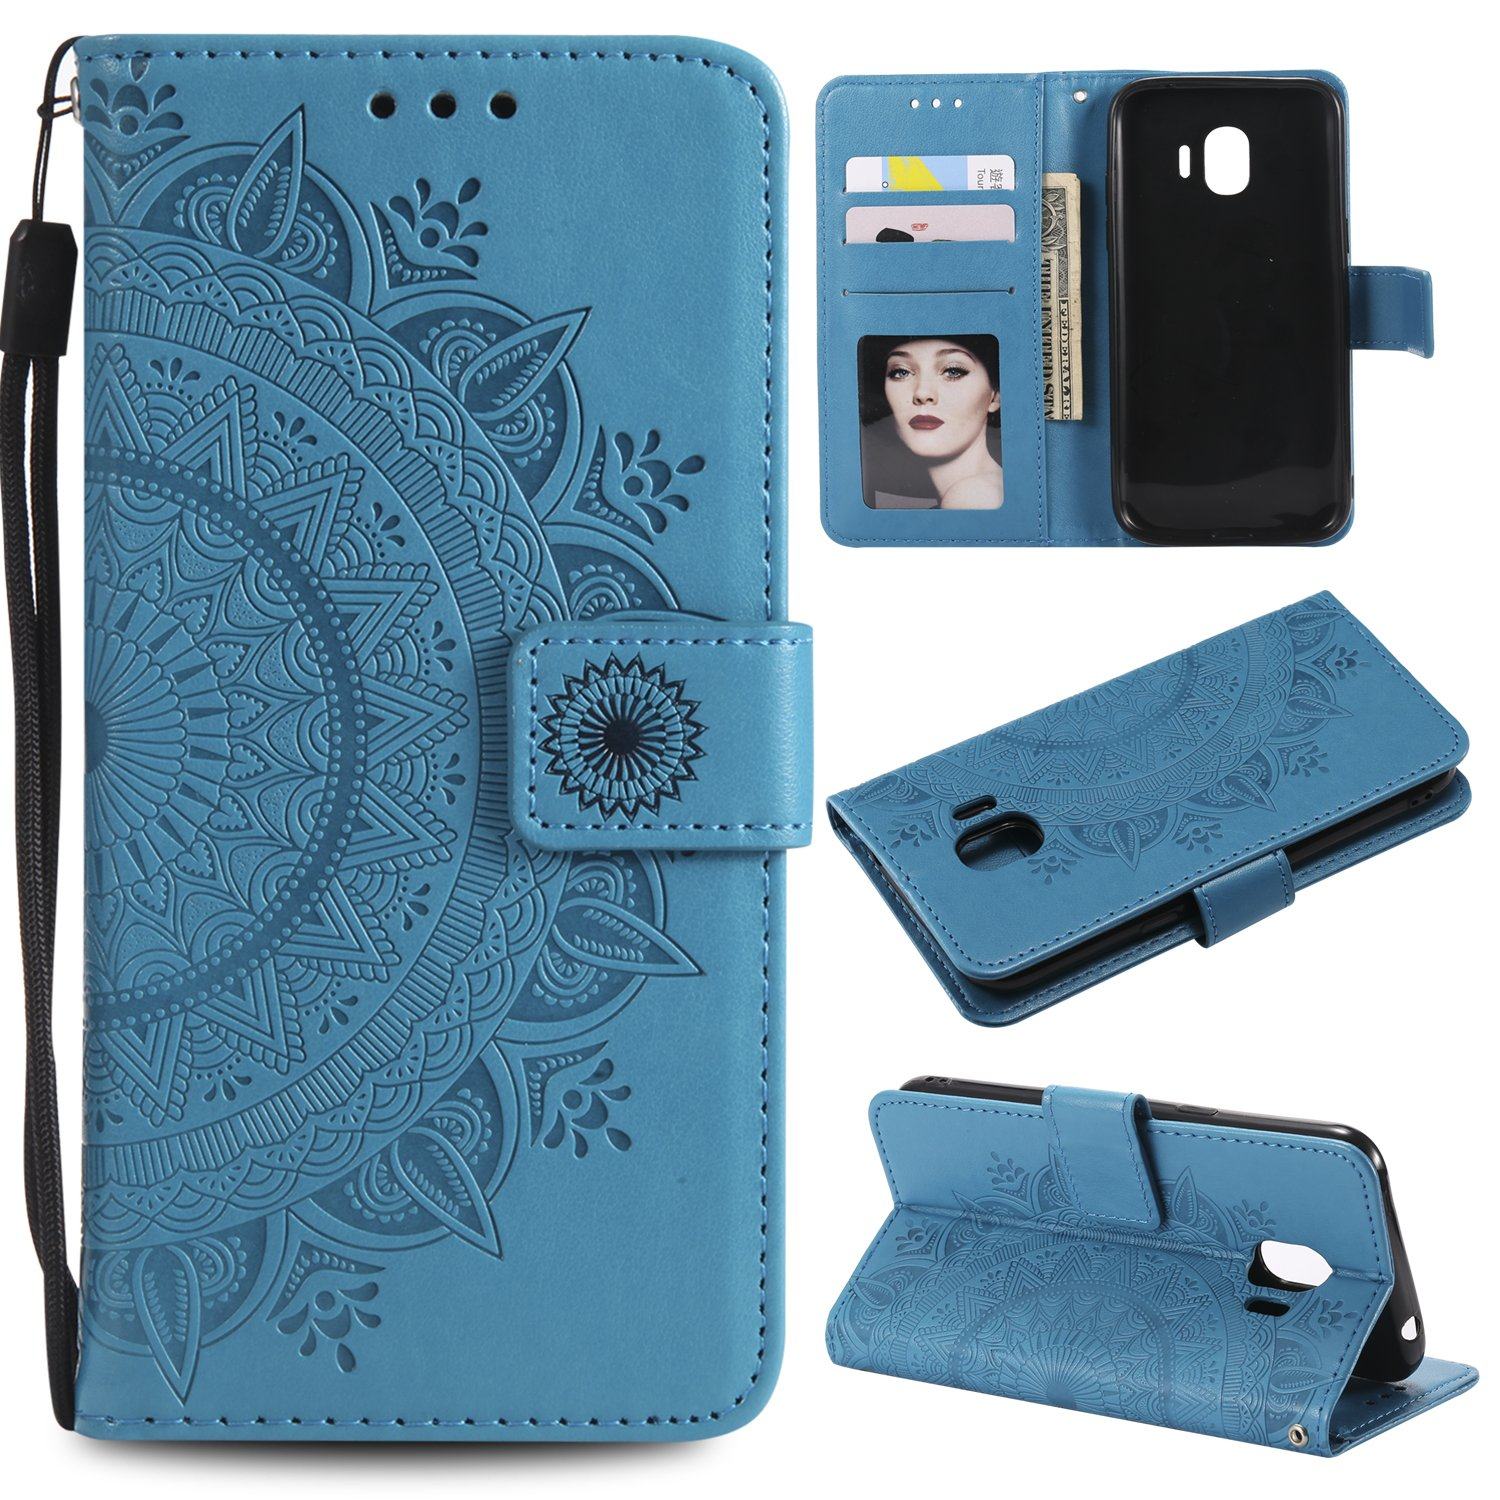 Galaxy J2 Pro 2018 Floral Wallet Case,Galaxy J2 Pro 2018 Strap Flip Case,Leecase Embossed Totem Flower Design Pu Leather Bookstyle Stand Flip Case for Samsung Galaxy J2 Pro 2018-Blue